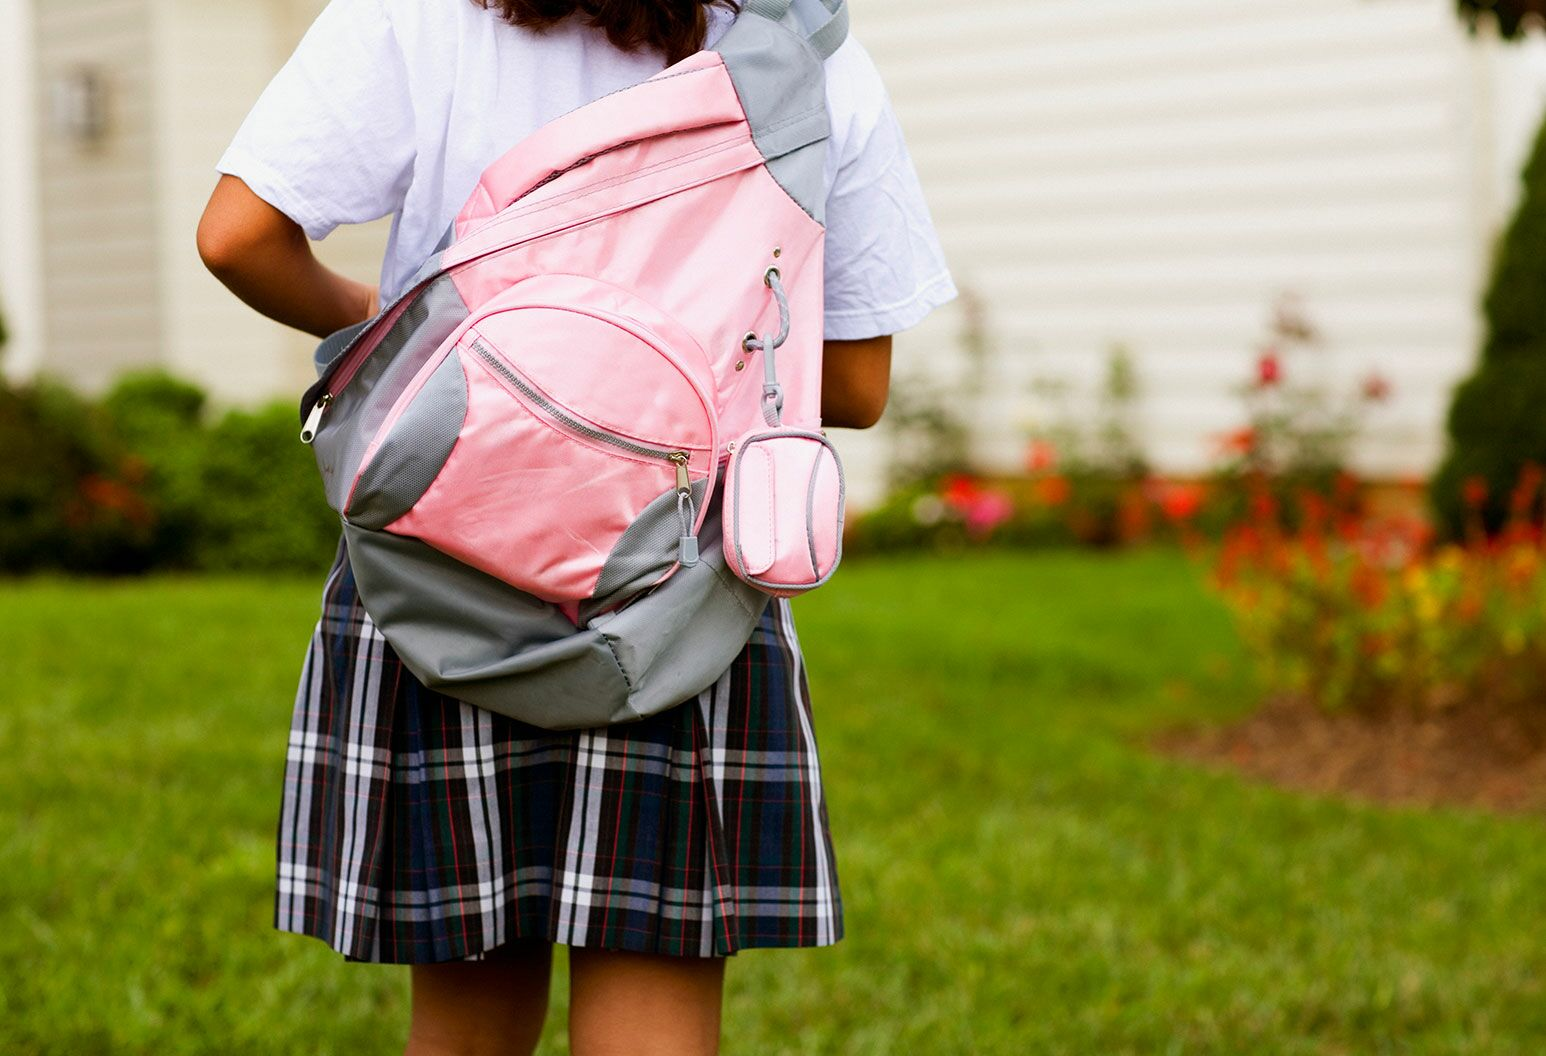 Rear view of a schoolgirl carrying a pink schoolbag